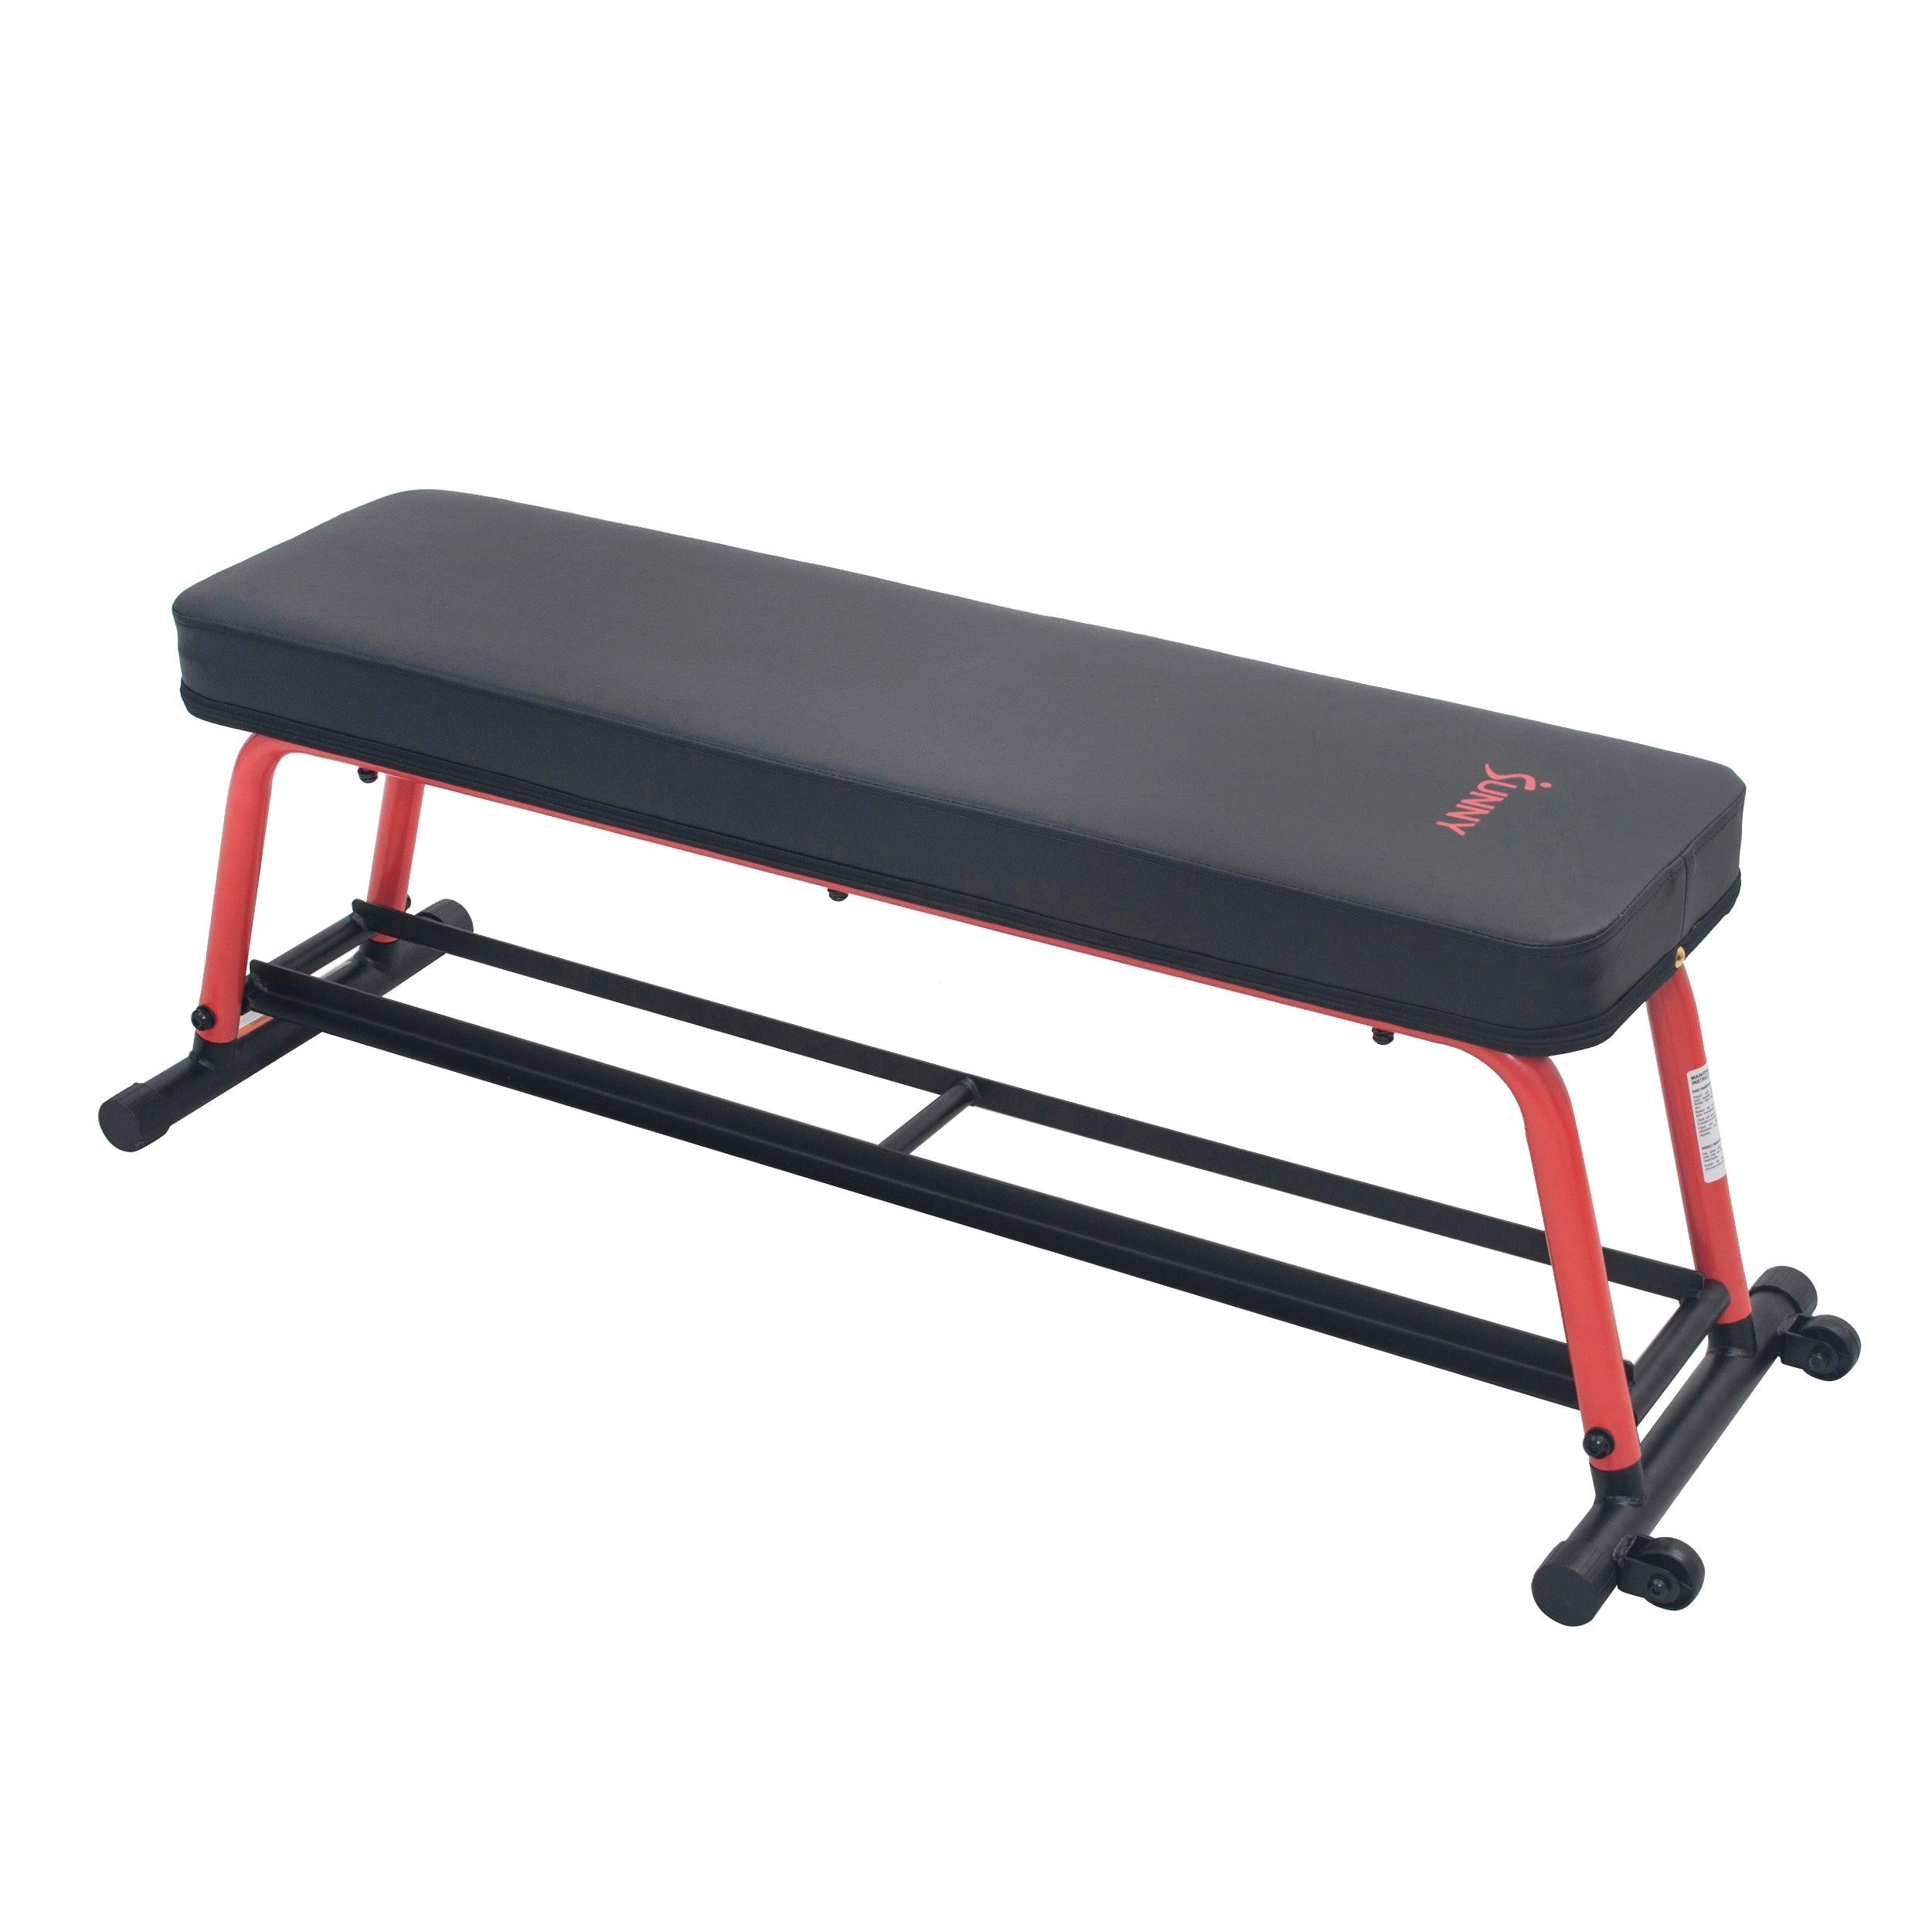 sunny-health-fitness-strength-power-zone-strength-flat-bench-SF-BH6996-high-weight-capacity